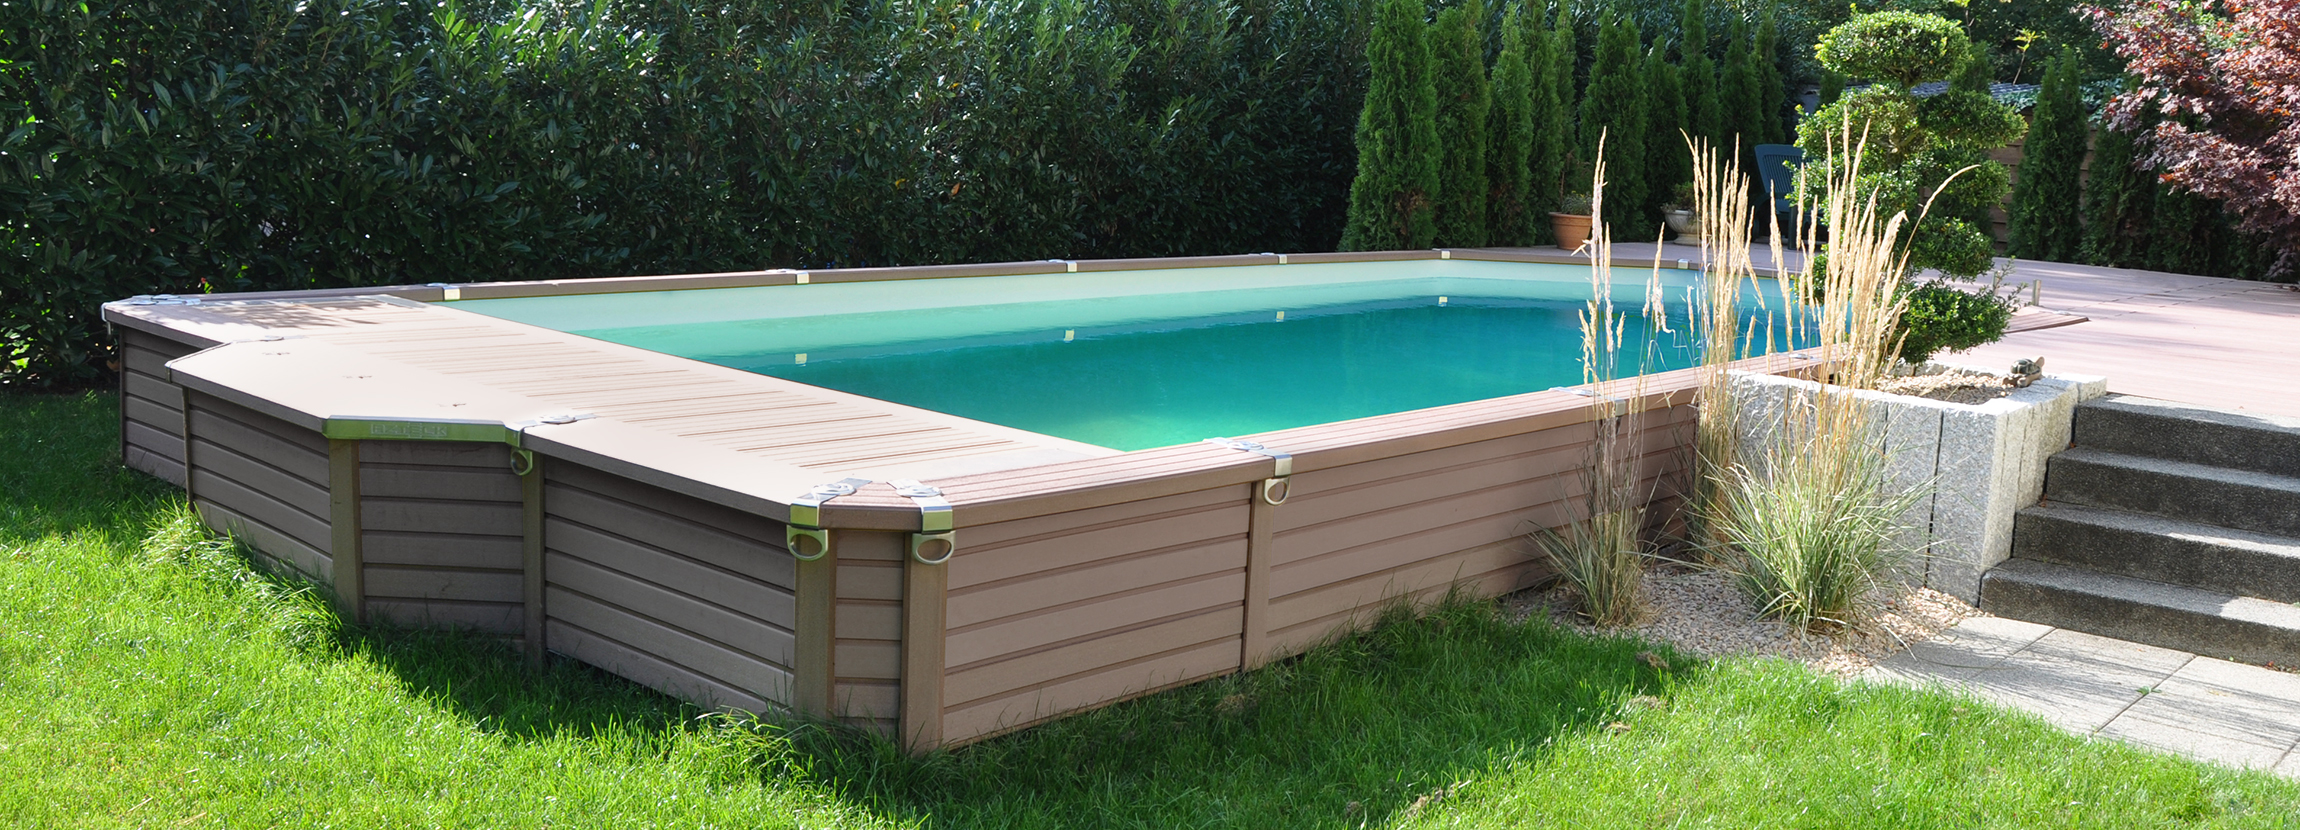 Pool Rund Winterfest Waterman Gmbh Waterman Poolsysteme Wasserpflegeprodukte